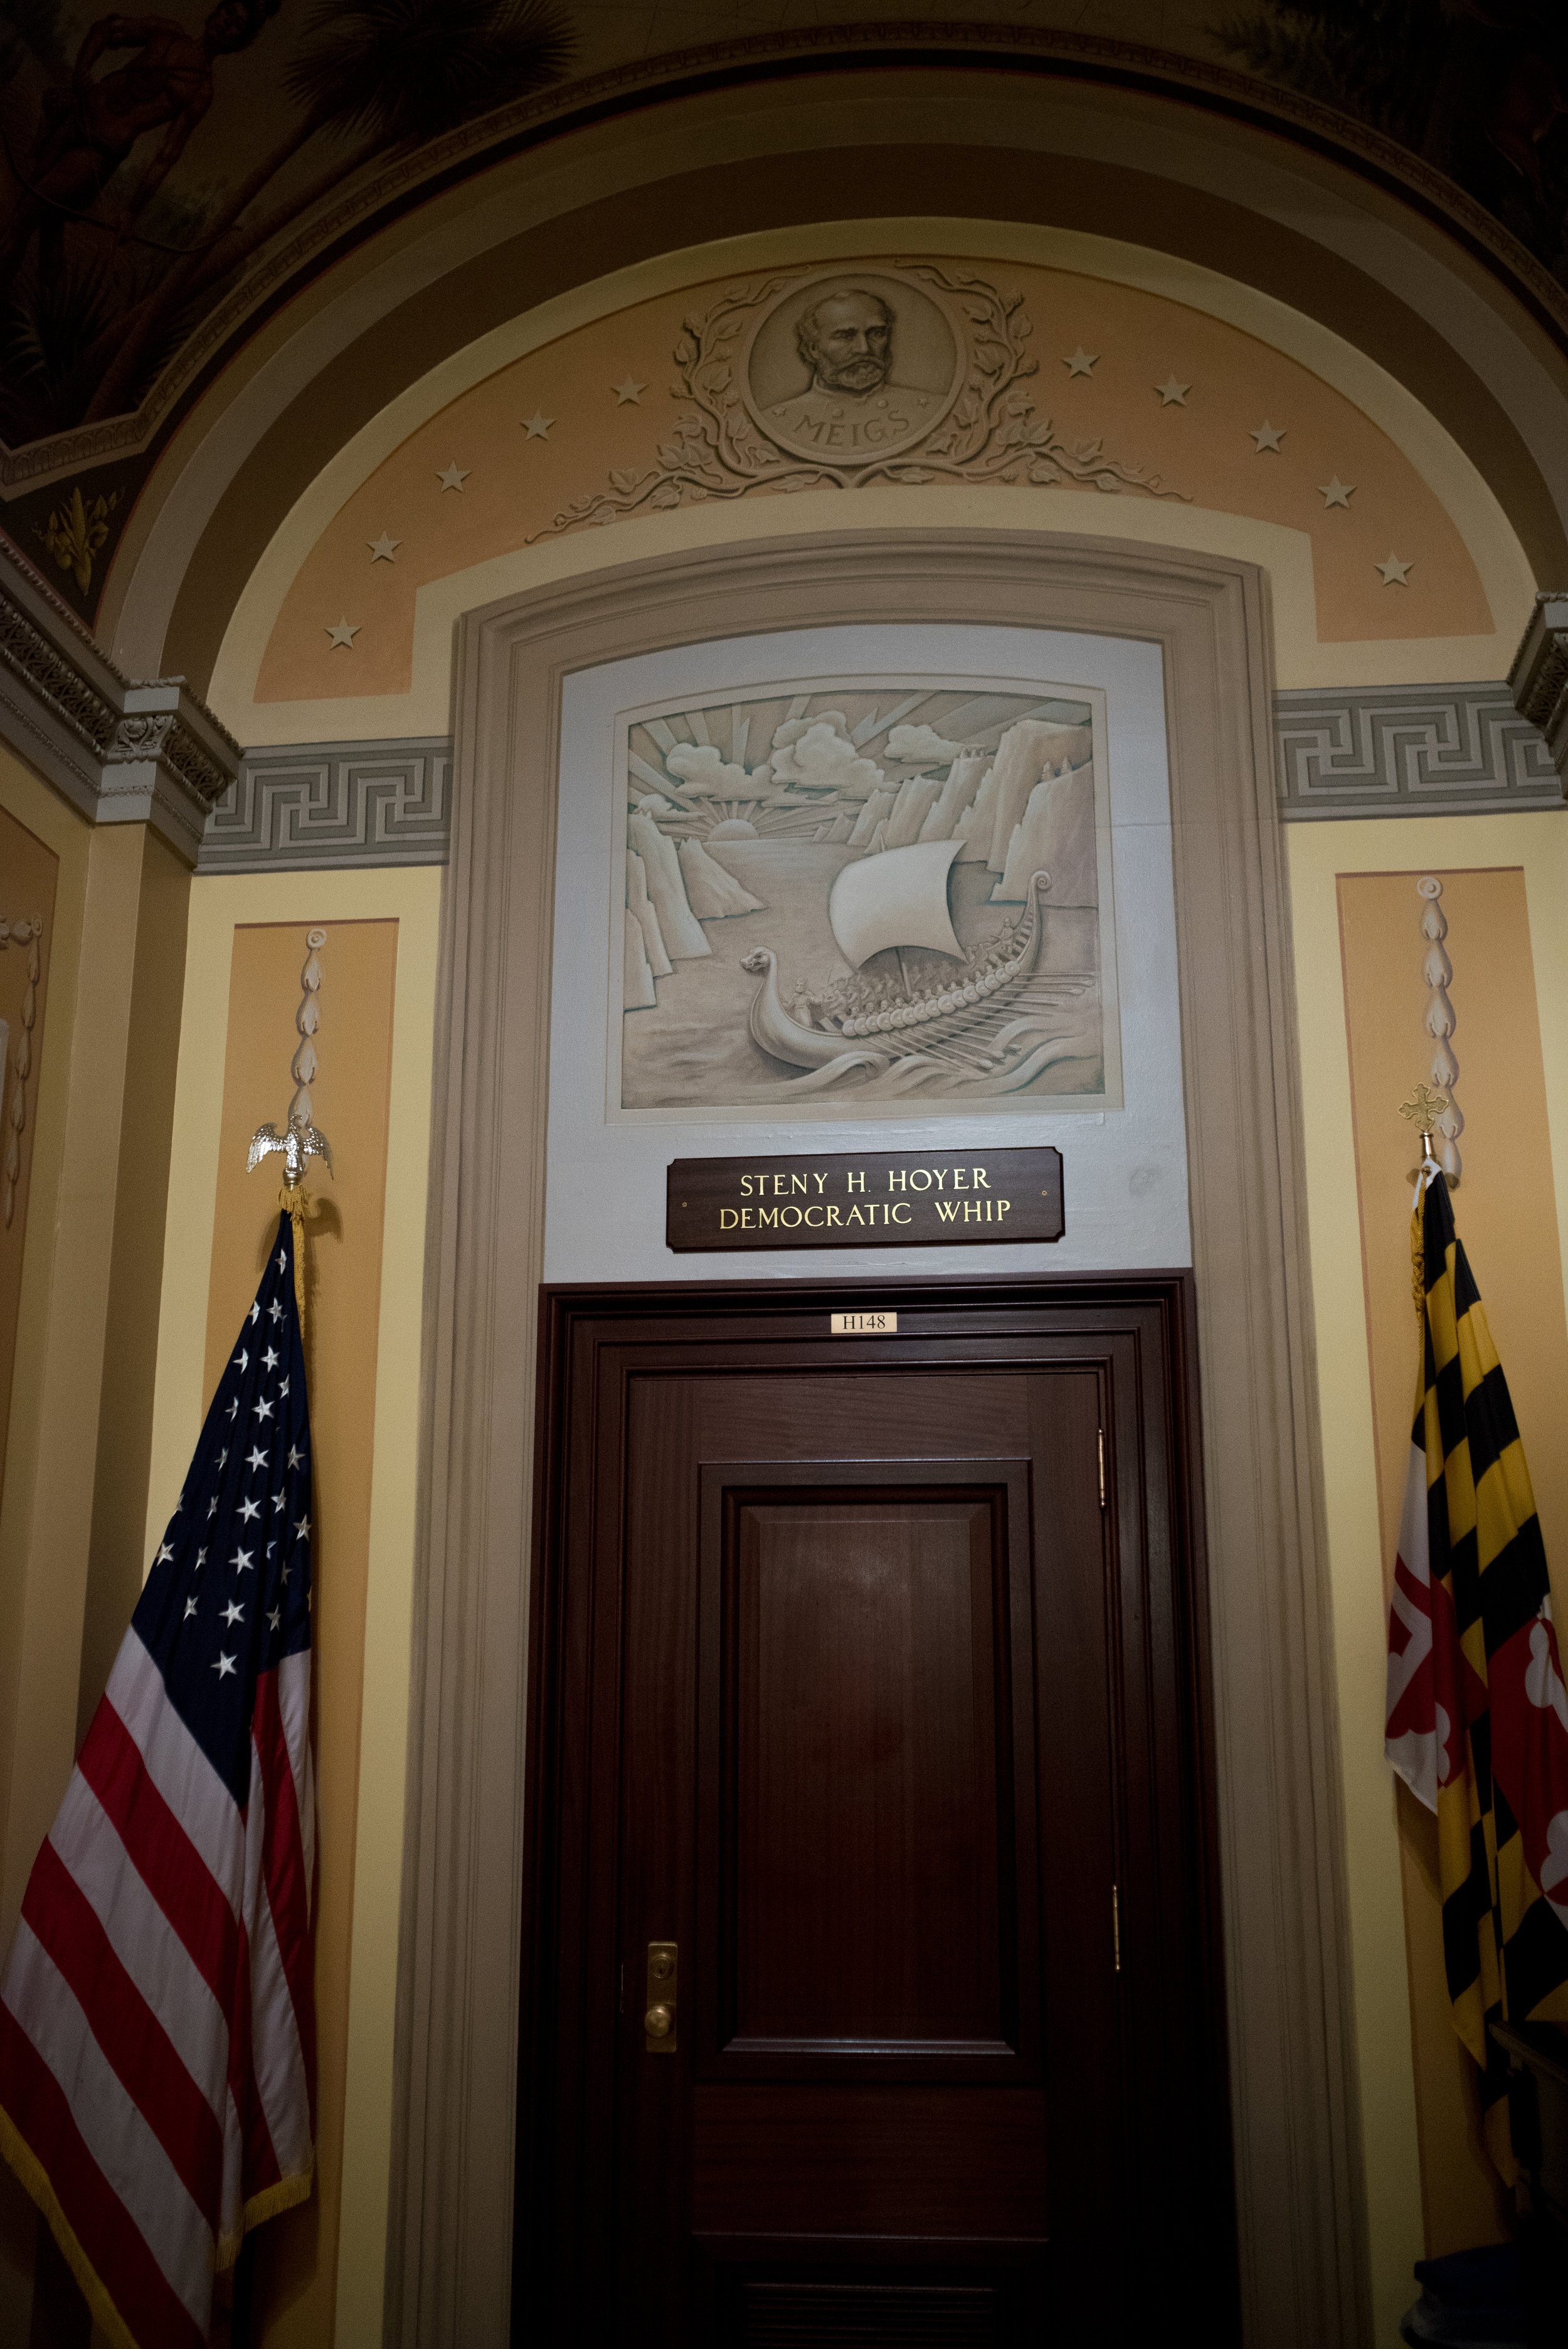 The office of Democratic Whip Steny Hoyer